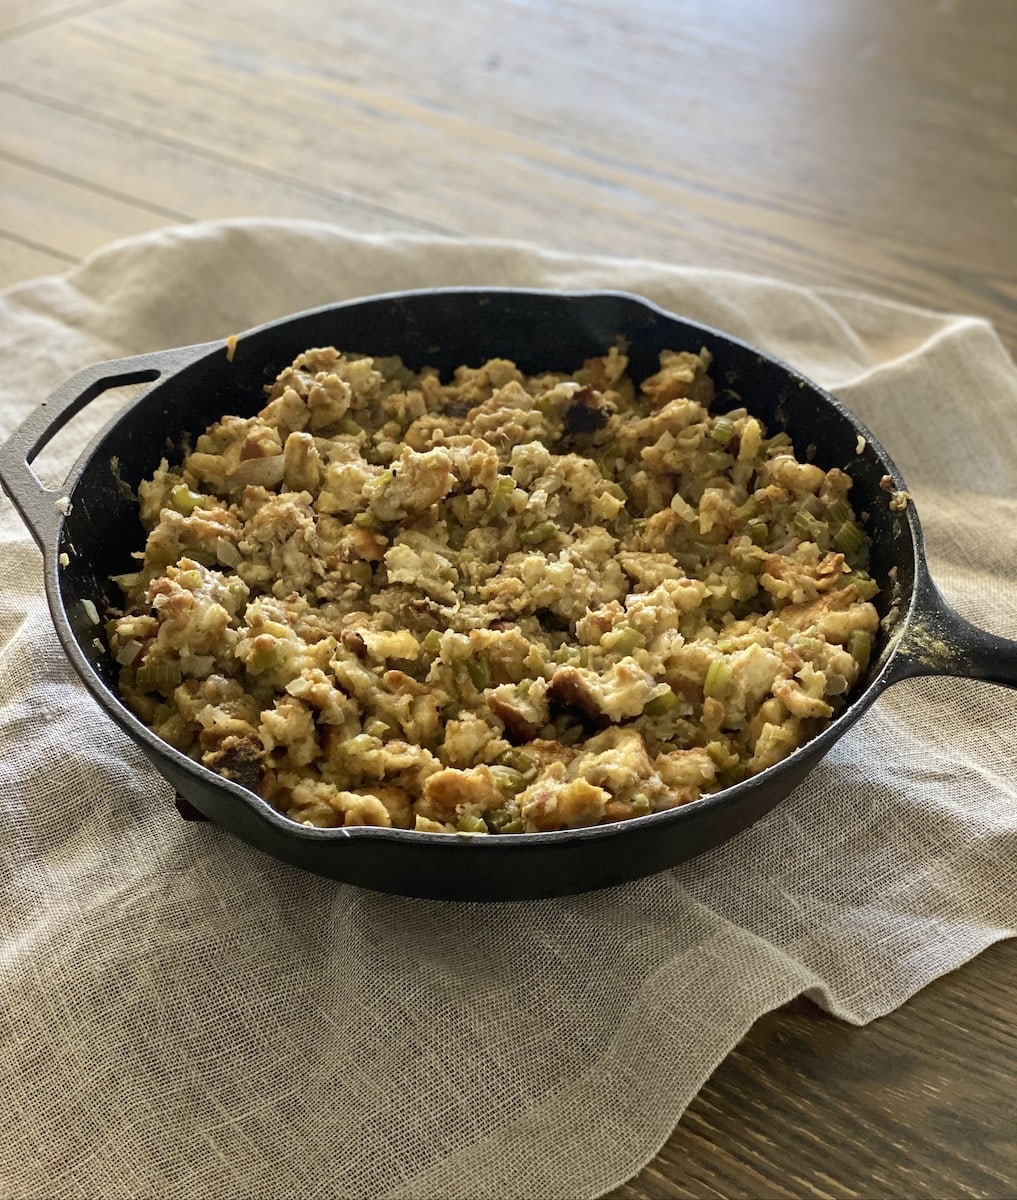 mom's stuffing before the oven, in cast iron skillet